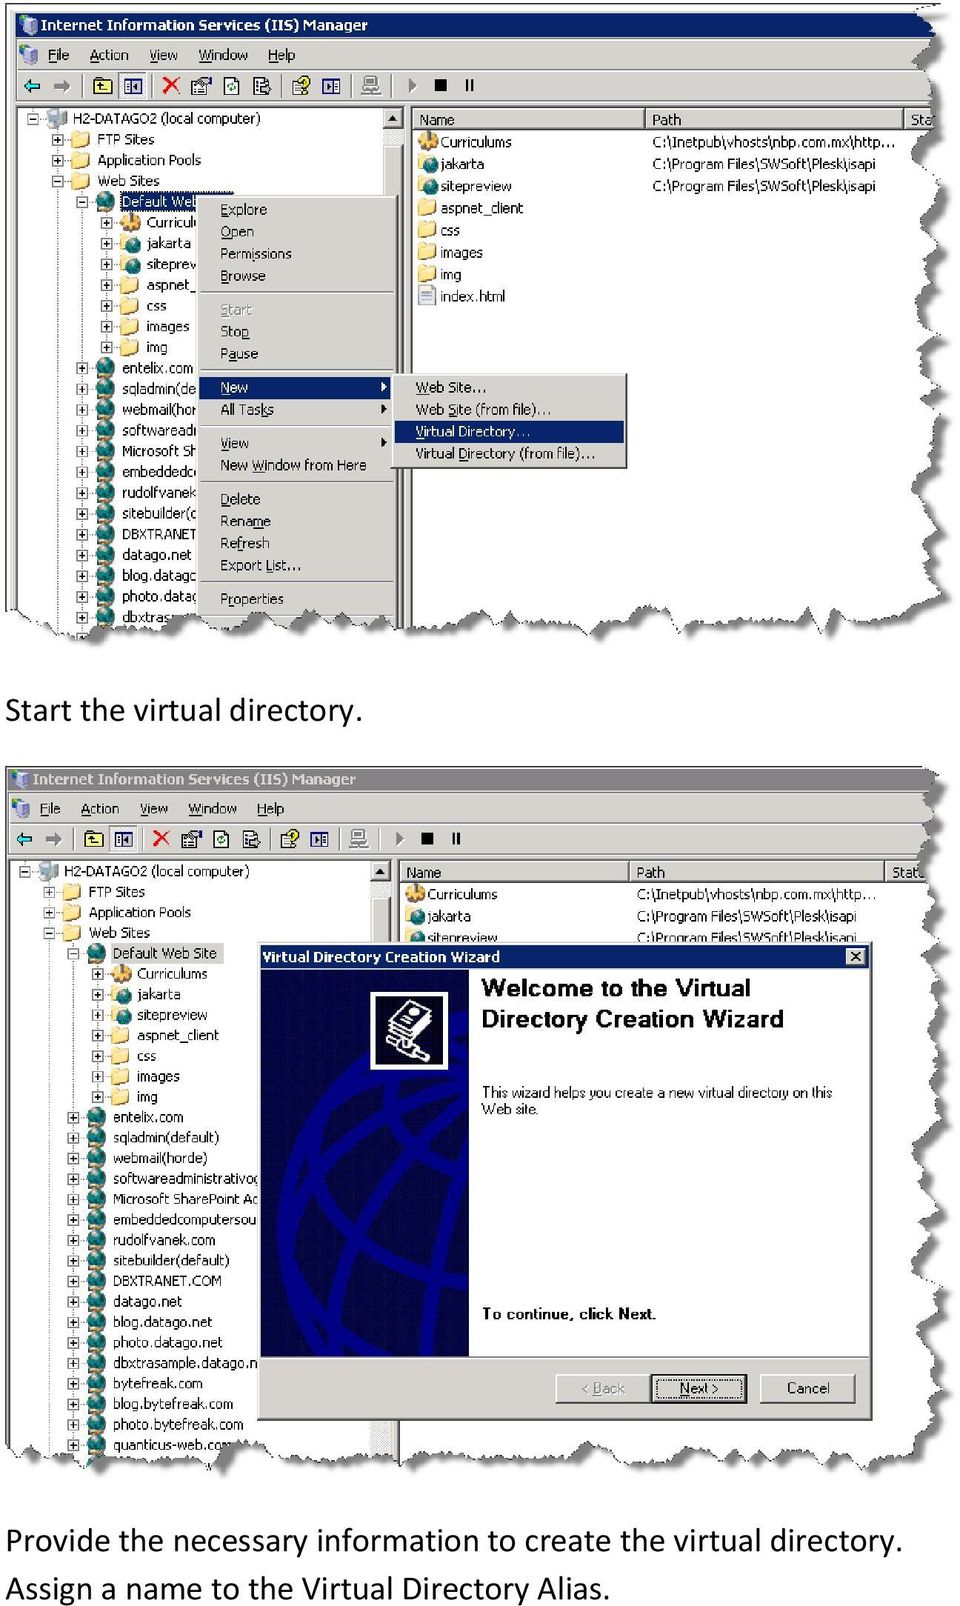 to create the virtual directory.